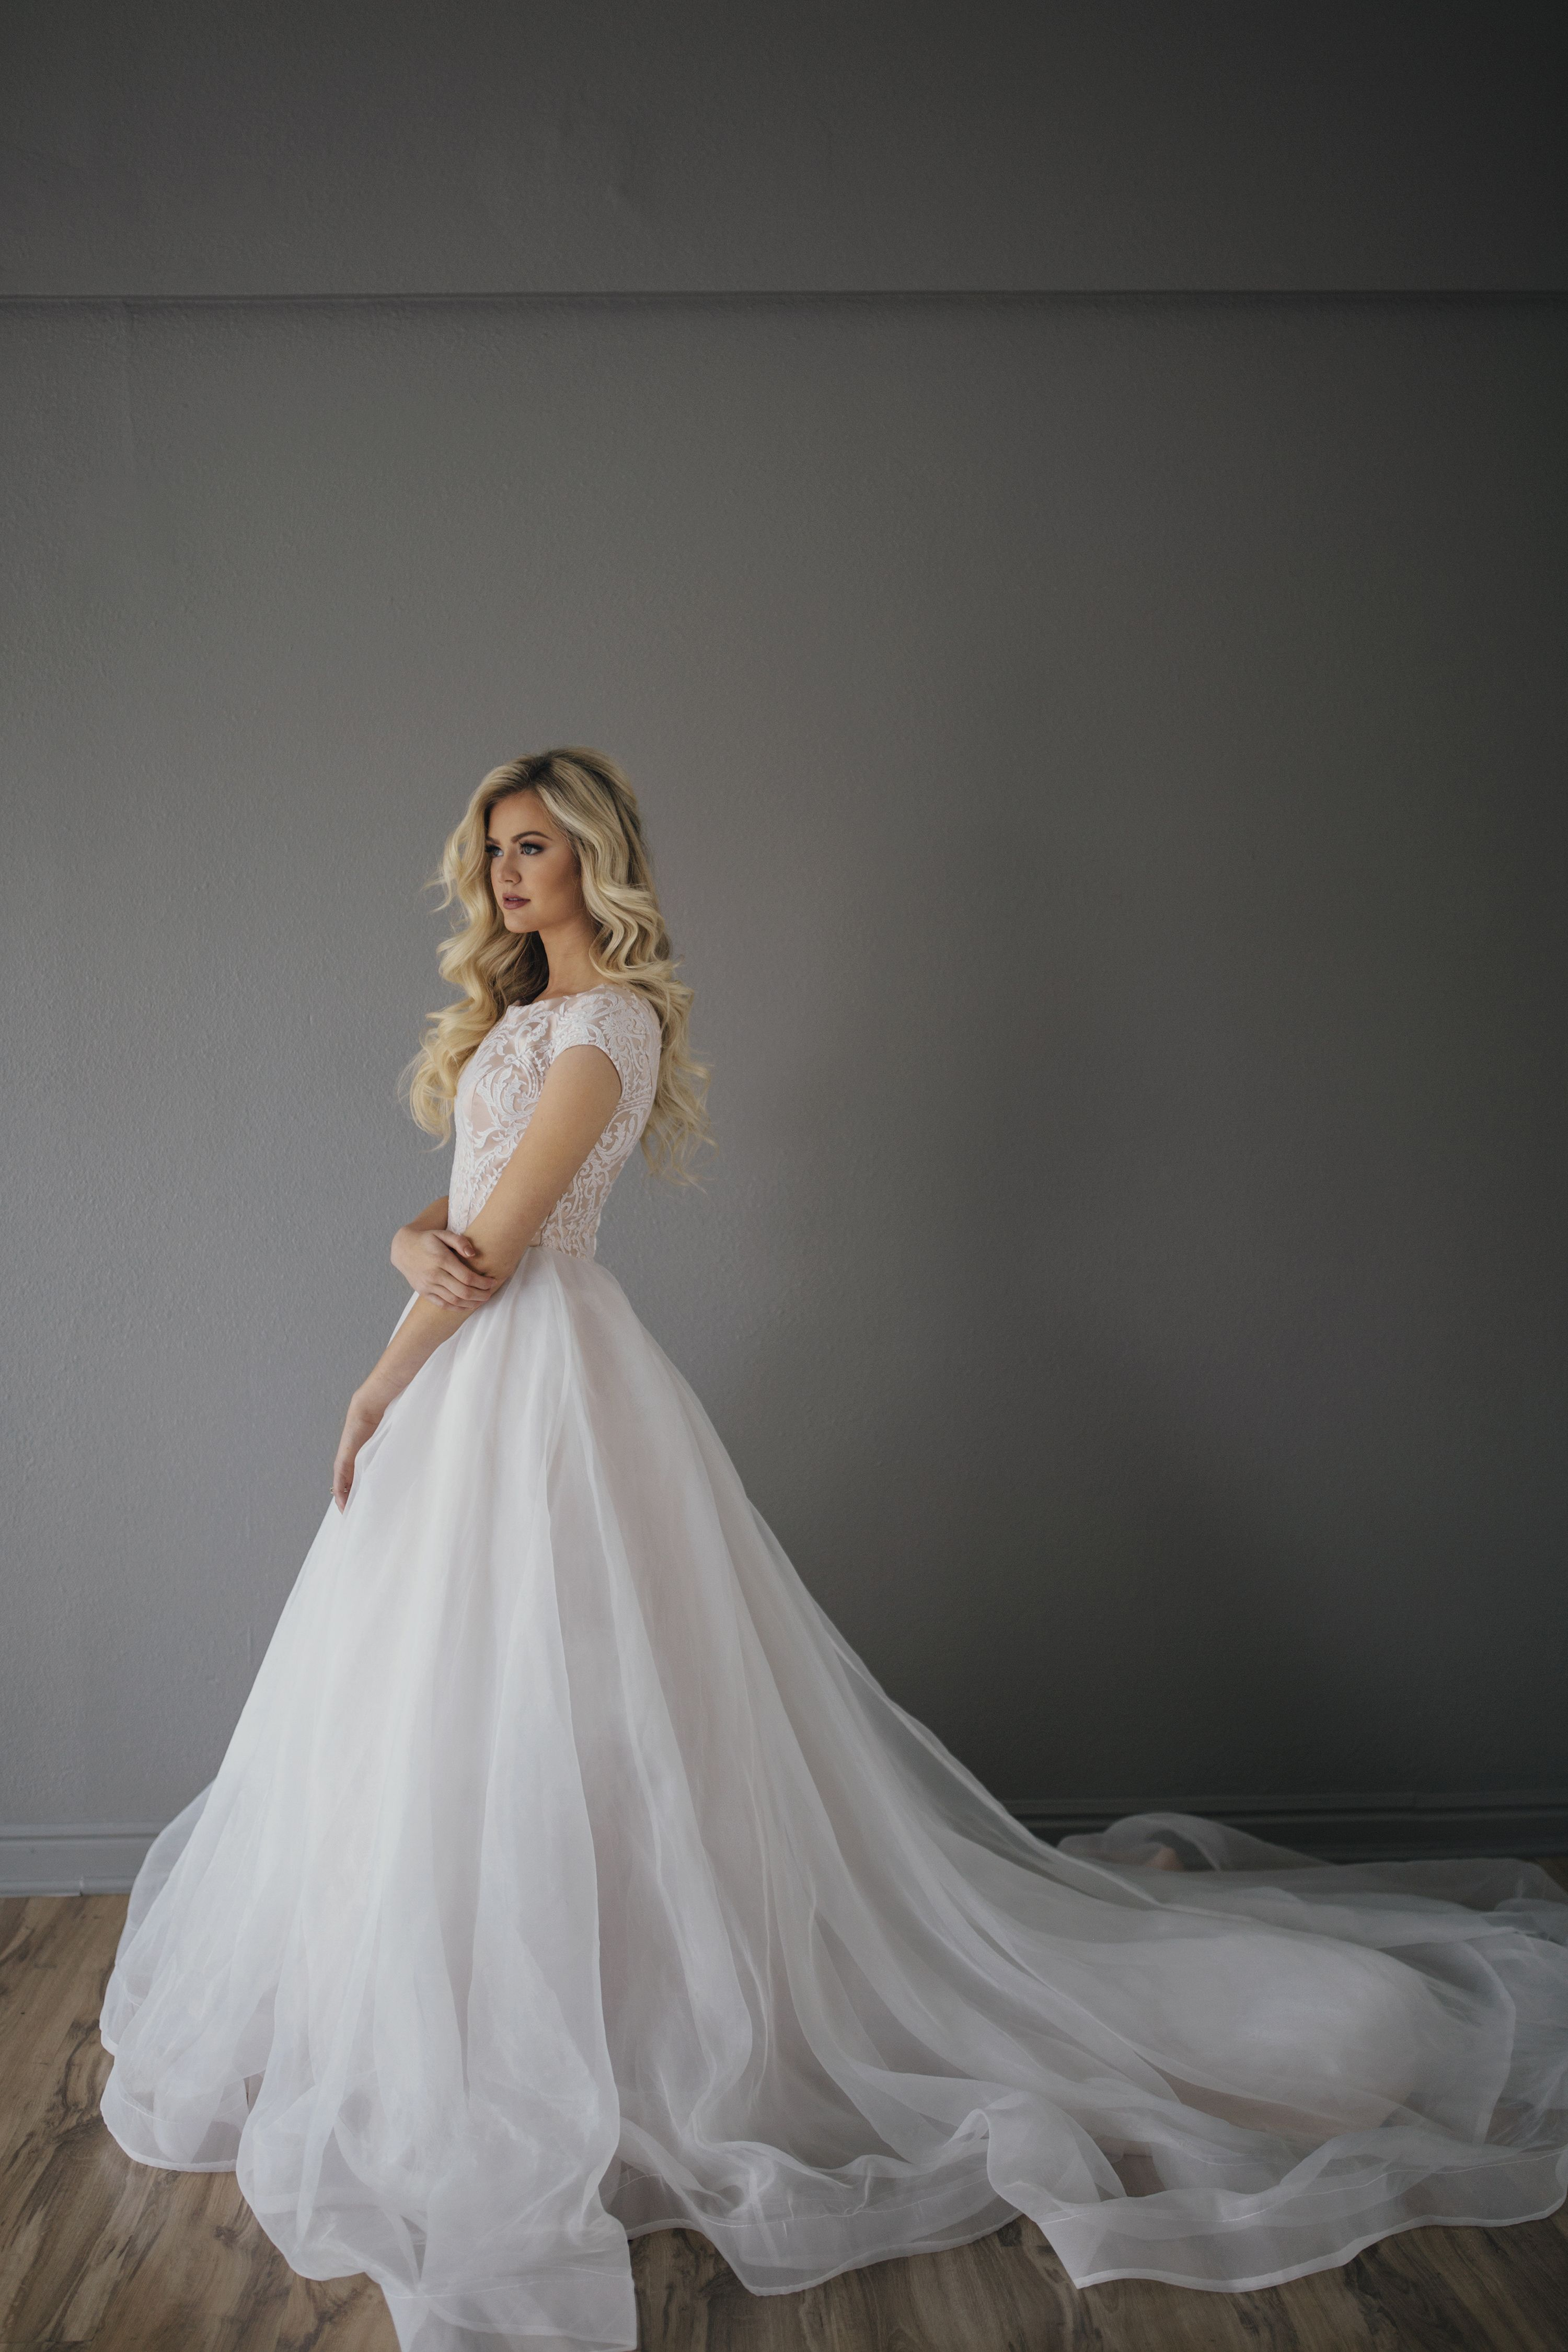 Holly Gown By Elizabeth Cooper Design Photo By Cassandra Farley Photography Modest Weddin Affordable Wedding Gown Wedding Dresses Lace Winter Wedding Dress